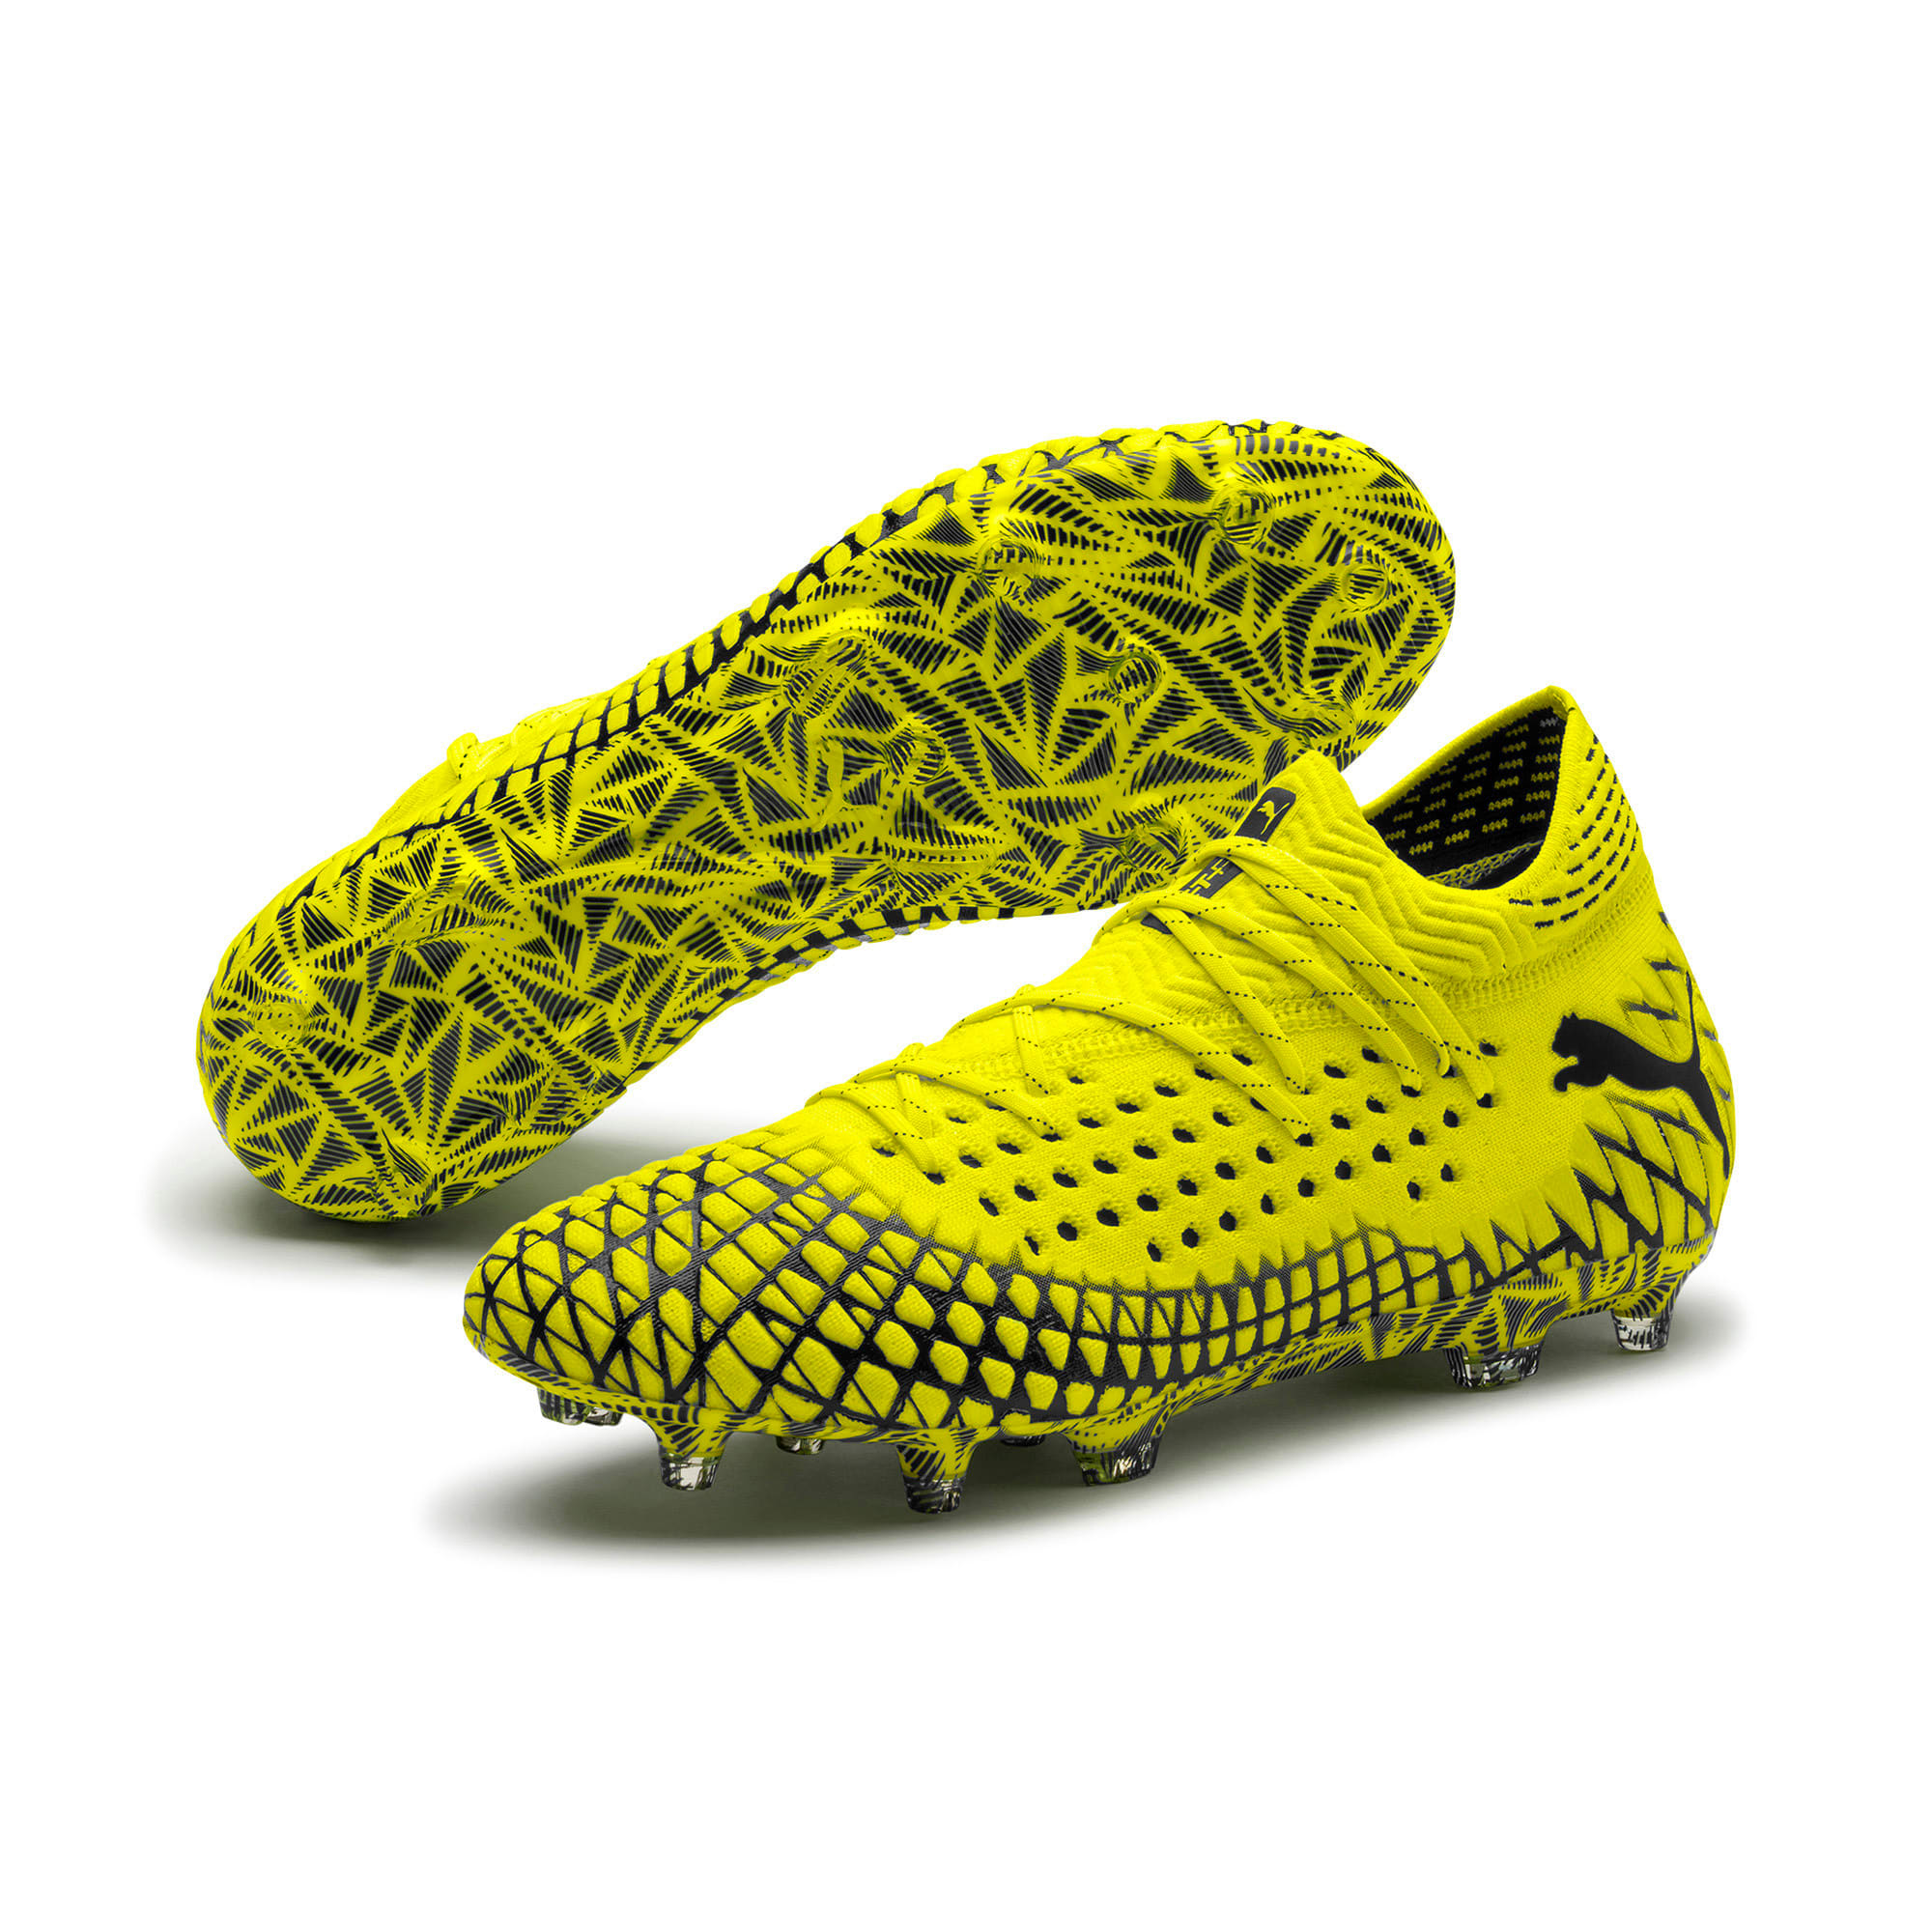 Thumbnail 2 of FUTURE 4.1 NETFIT FG/AG Men's Football Boots, Yellow Alert-Puma Black, medium